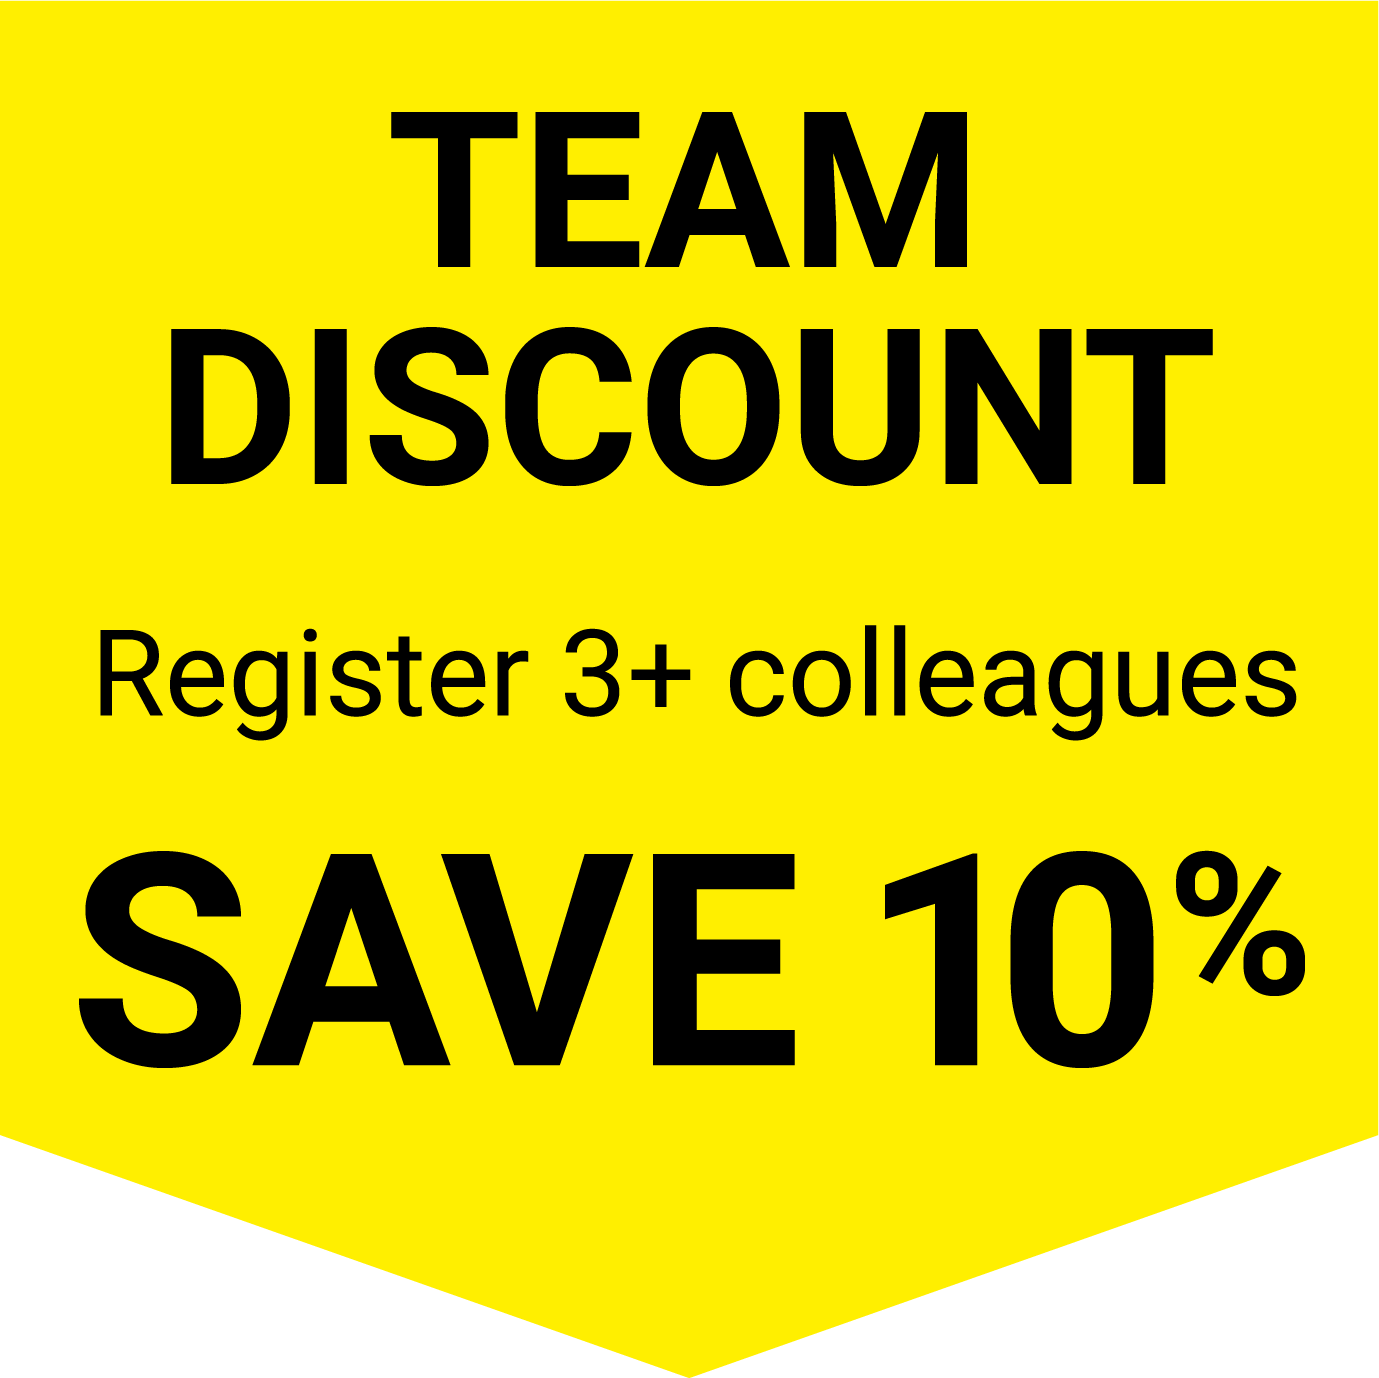 10% Team Discount when you buy 3 or more tickets